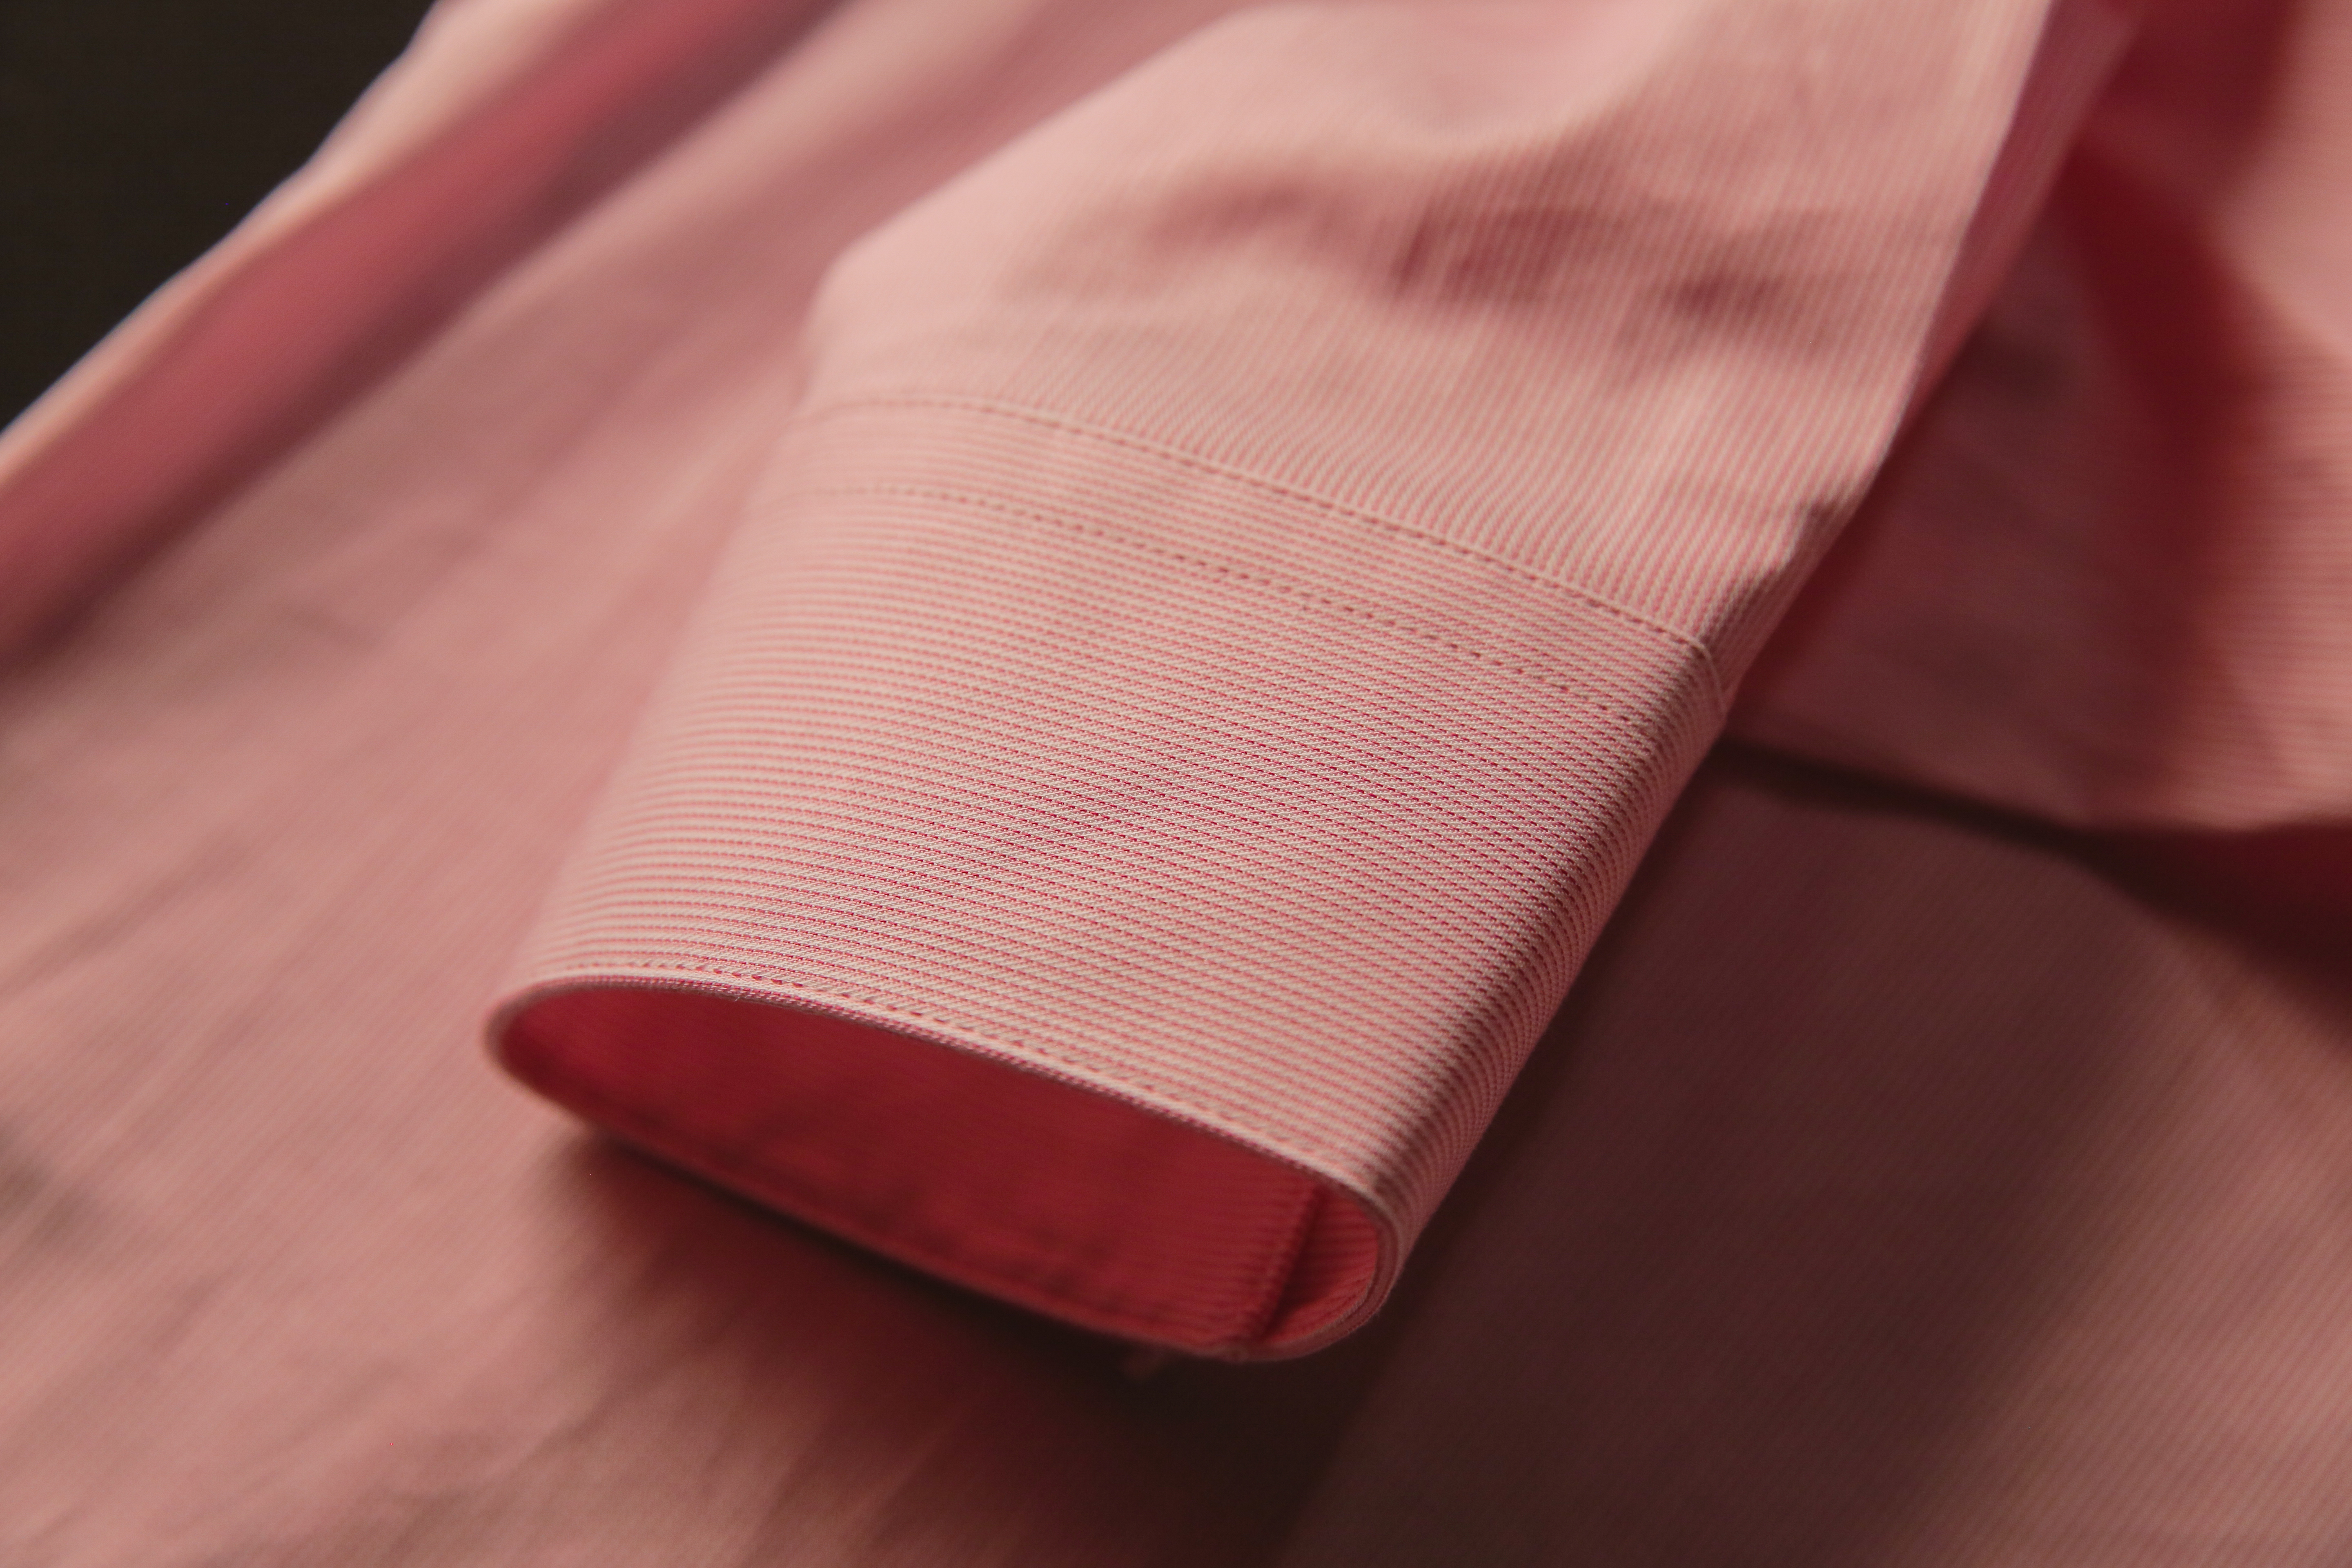 M-Tailor-Made-To-Measure-Shirt-App-2